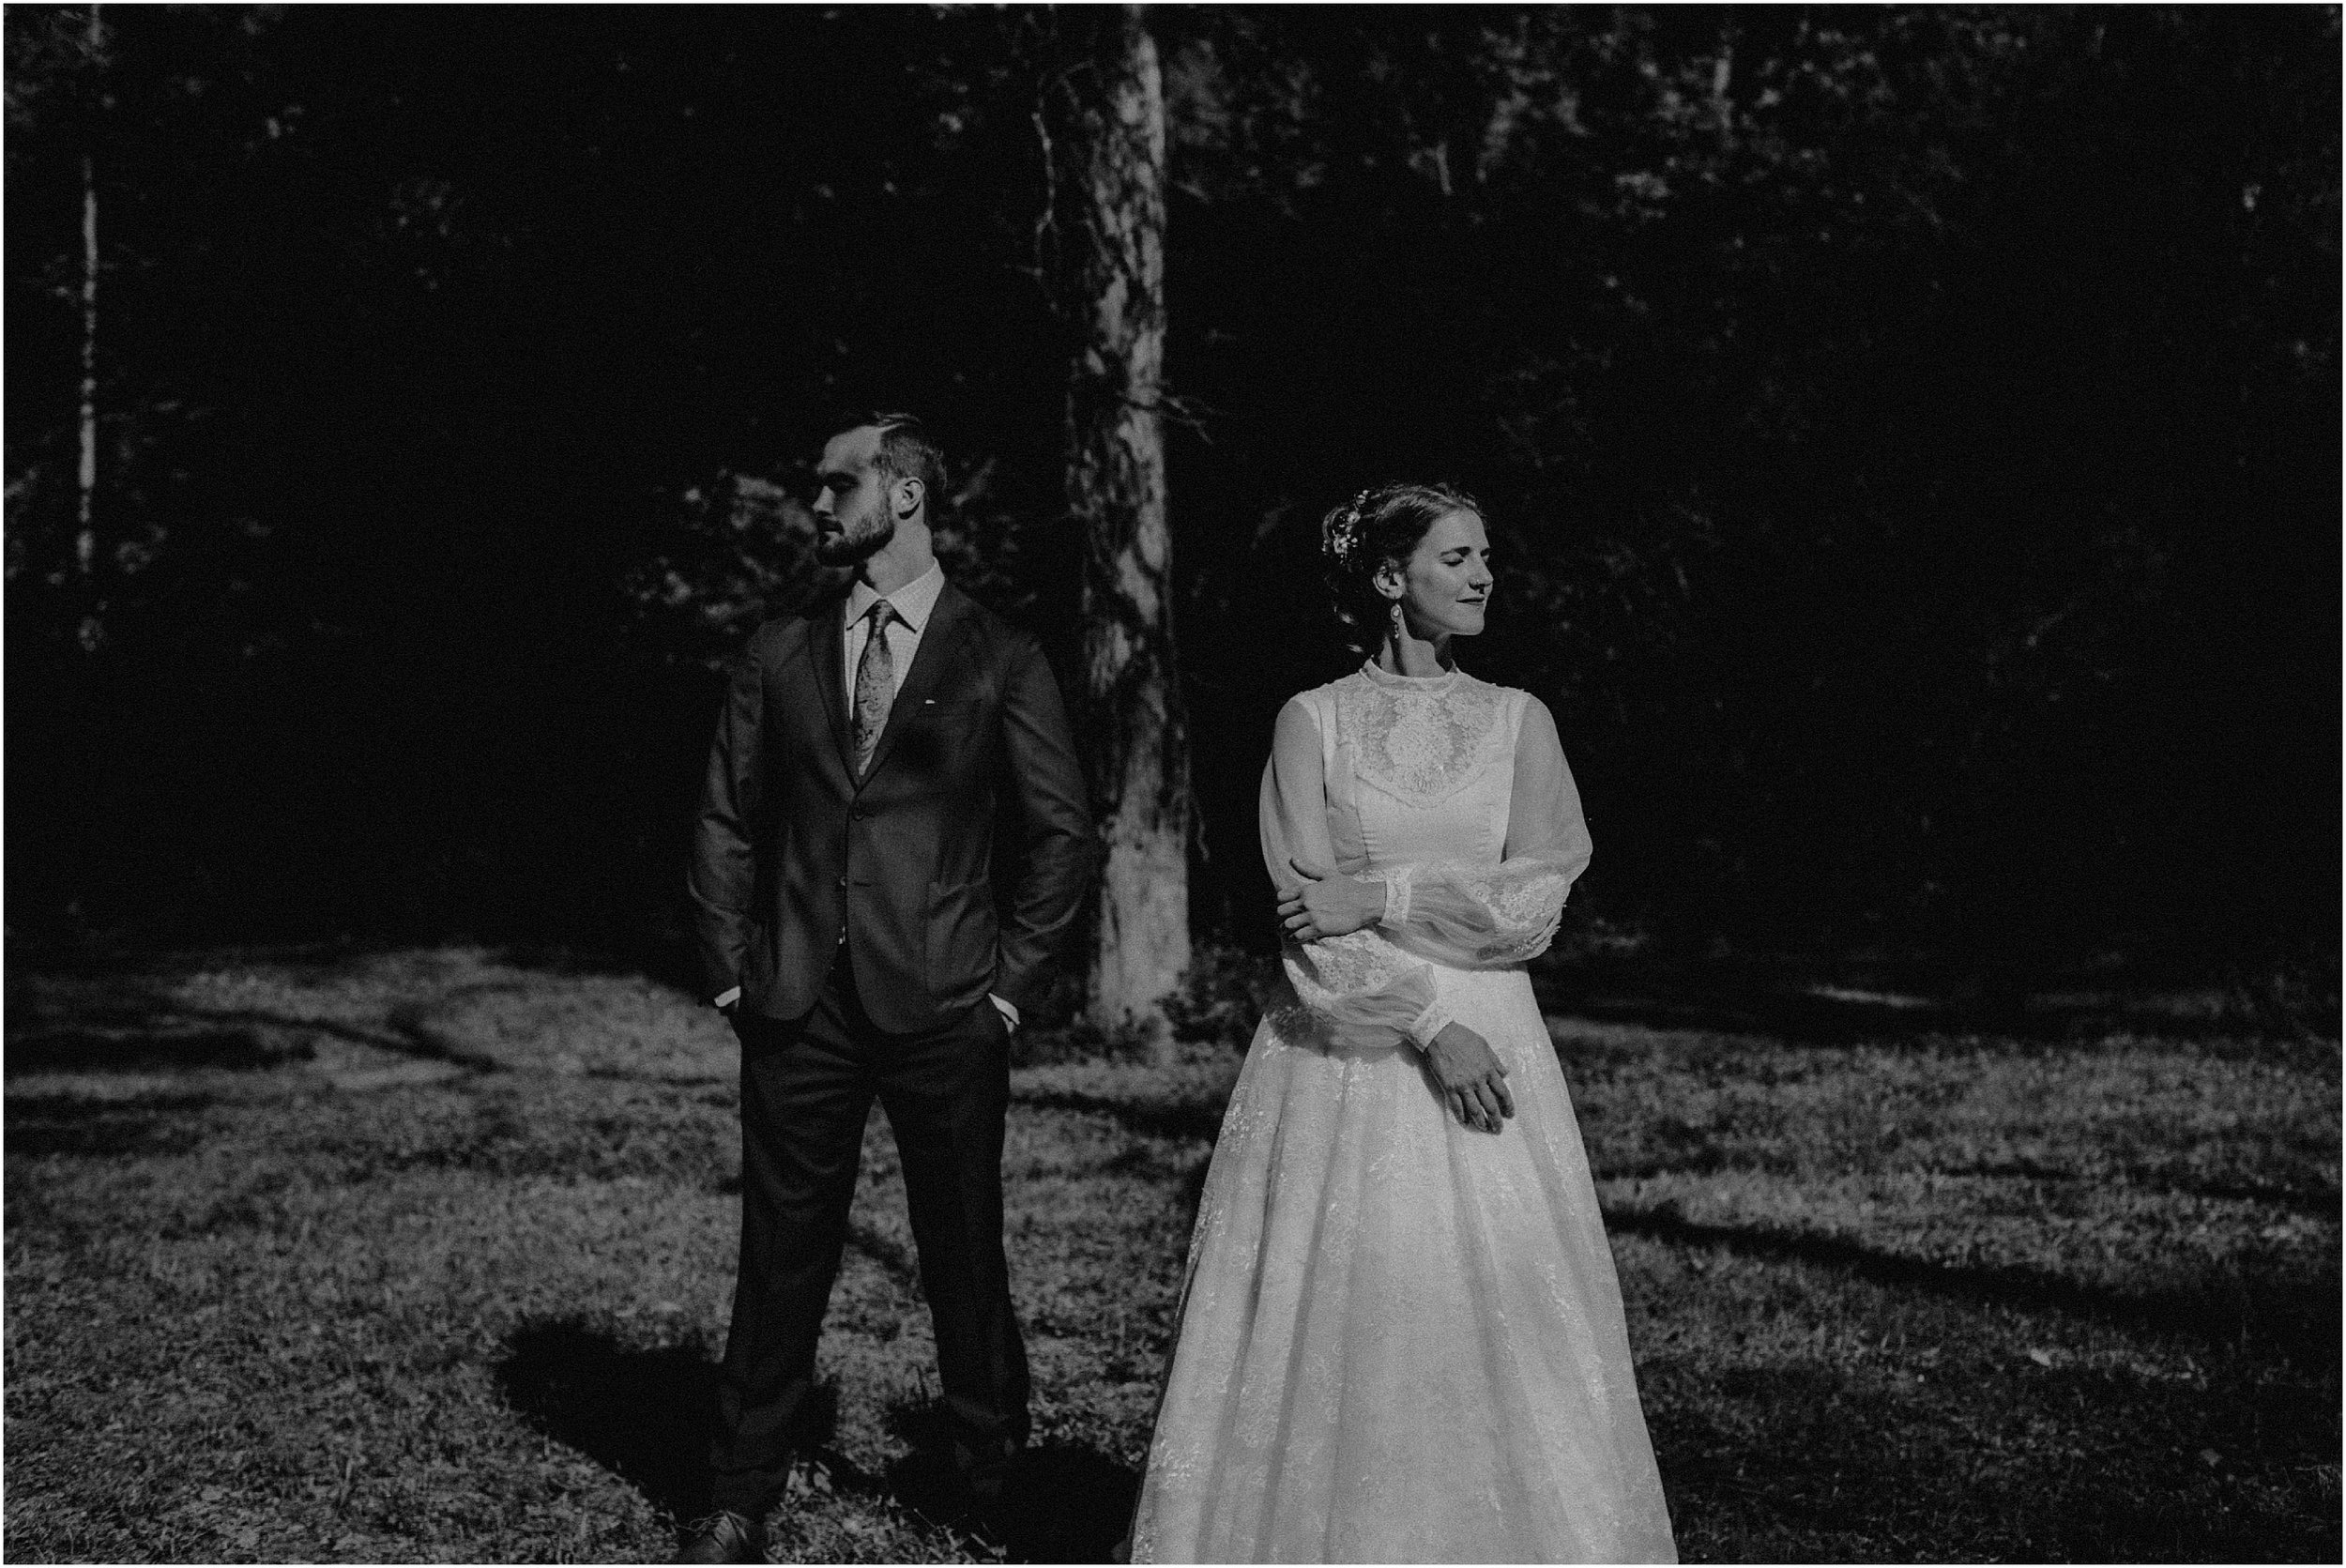 Wet-plate inspired black and white vintage image of the bride and groom